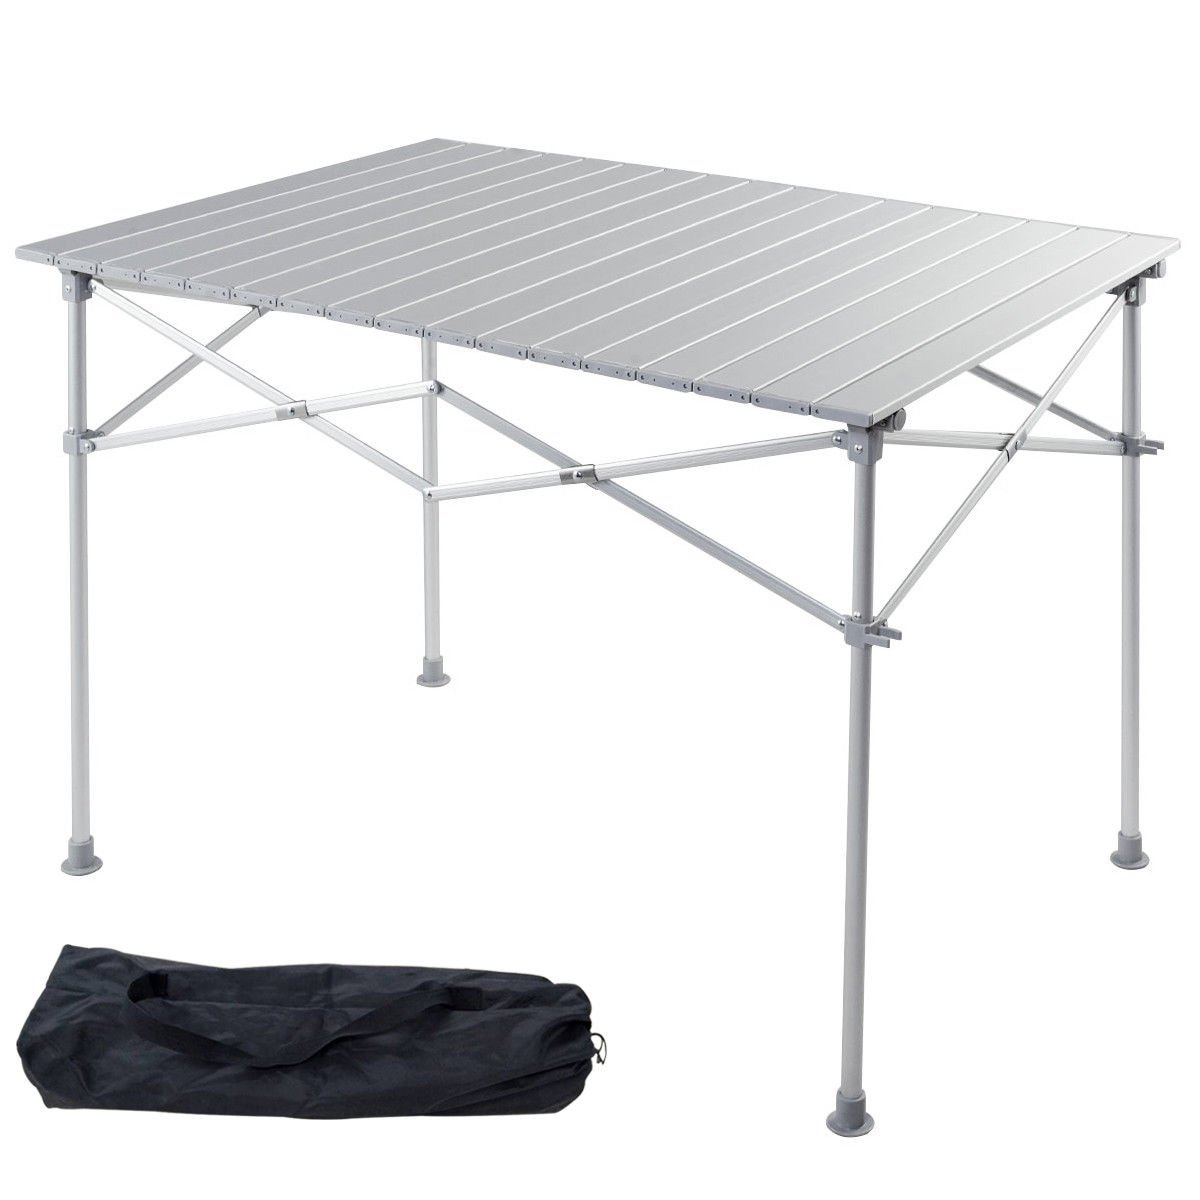 Giantex Portable Aluminum Folding Table Lightweight Outdoor Roll up Camping Picnic Table Storage Bag (40'' L x 28'' W)